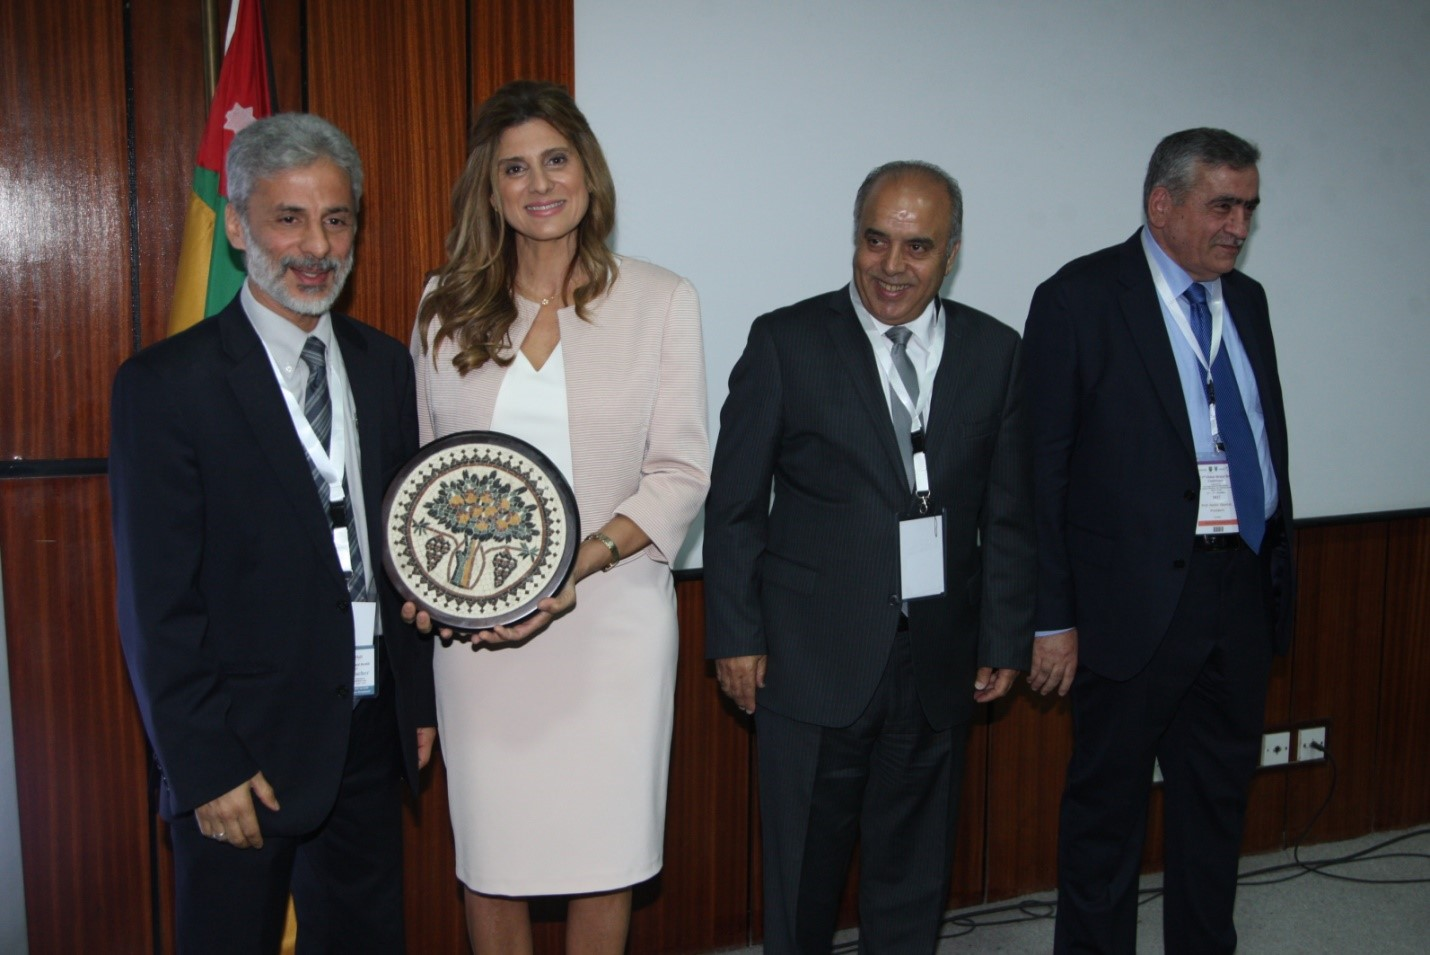 Her Highness Princesses Dina Mired of Jordan, the Conference Patron, awards Dr. Al-Delaimy the Conference plaque for his effort in co-leading the organization of the 2017 2nd National Global Mental Health Conference to the left of her is President of the University of Jordan and the Dean of School of Medicine.